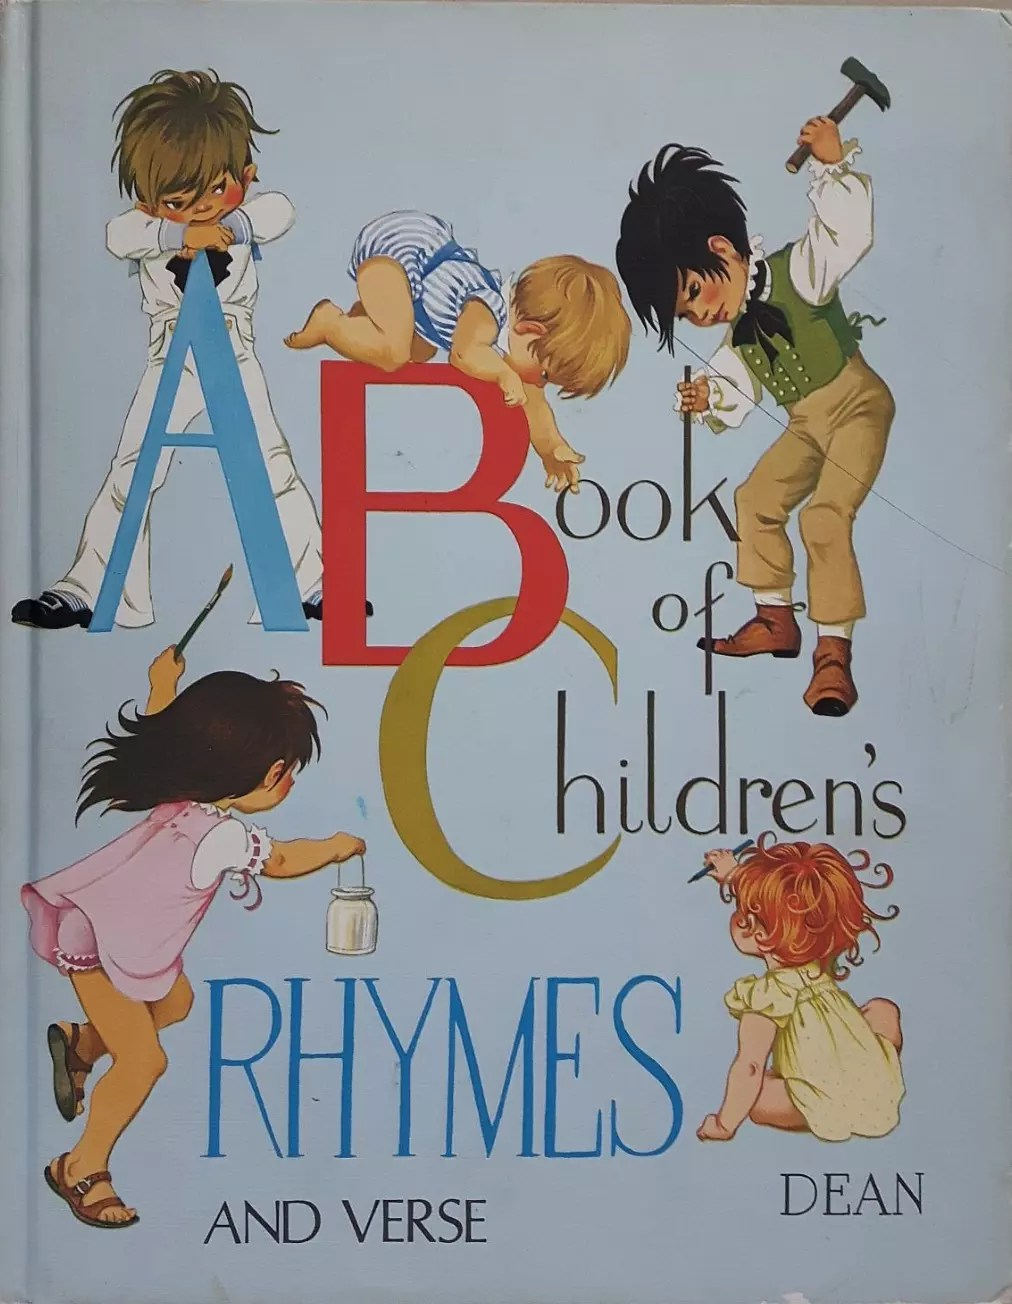 Janet Anne Grahame Johnstone A Book of Childrens Rhymes and Verse